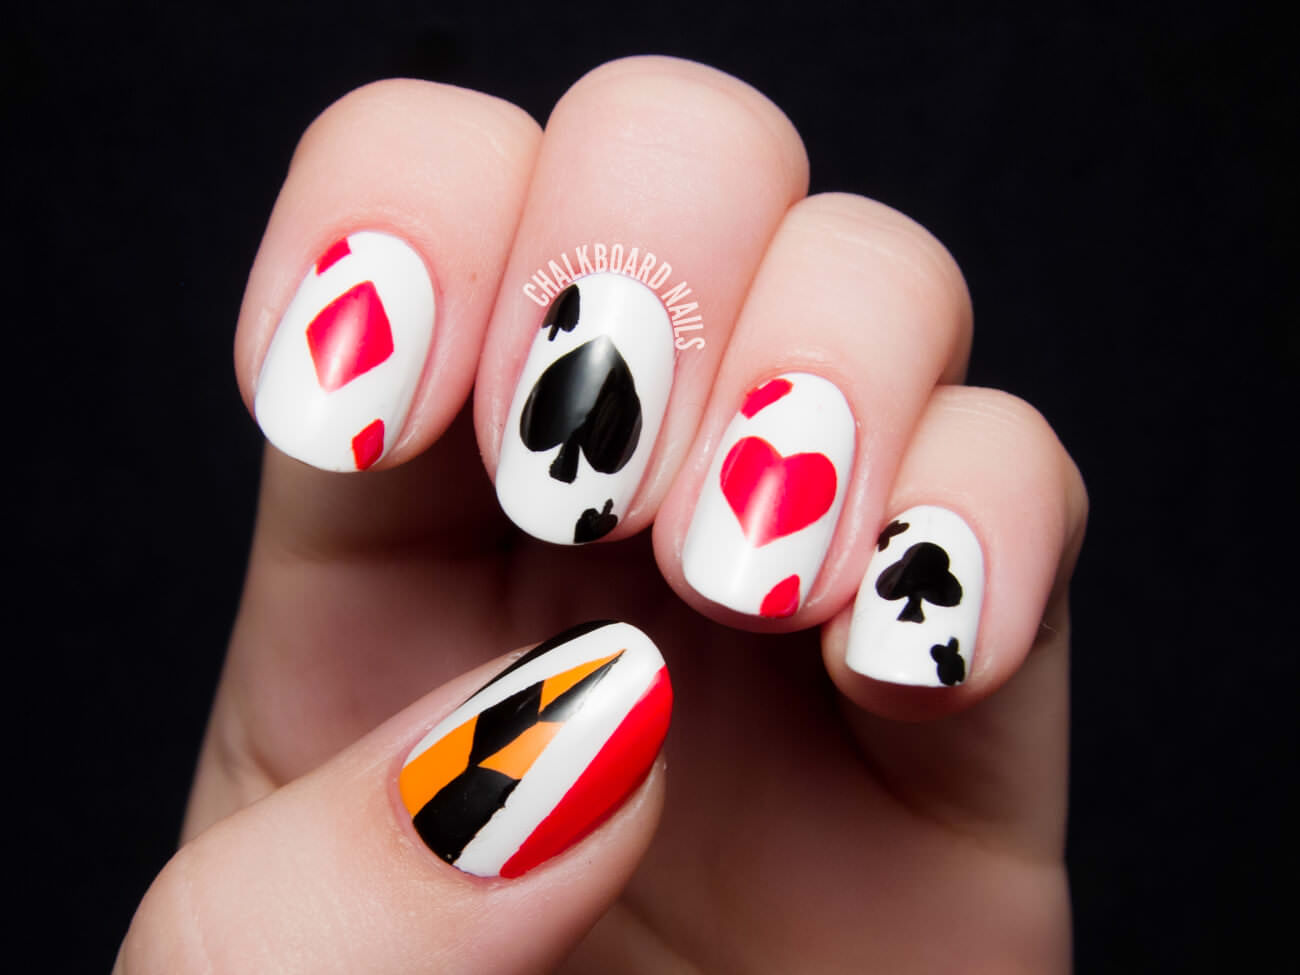 queen-of-hearts-nail-art-5